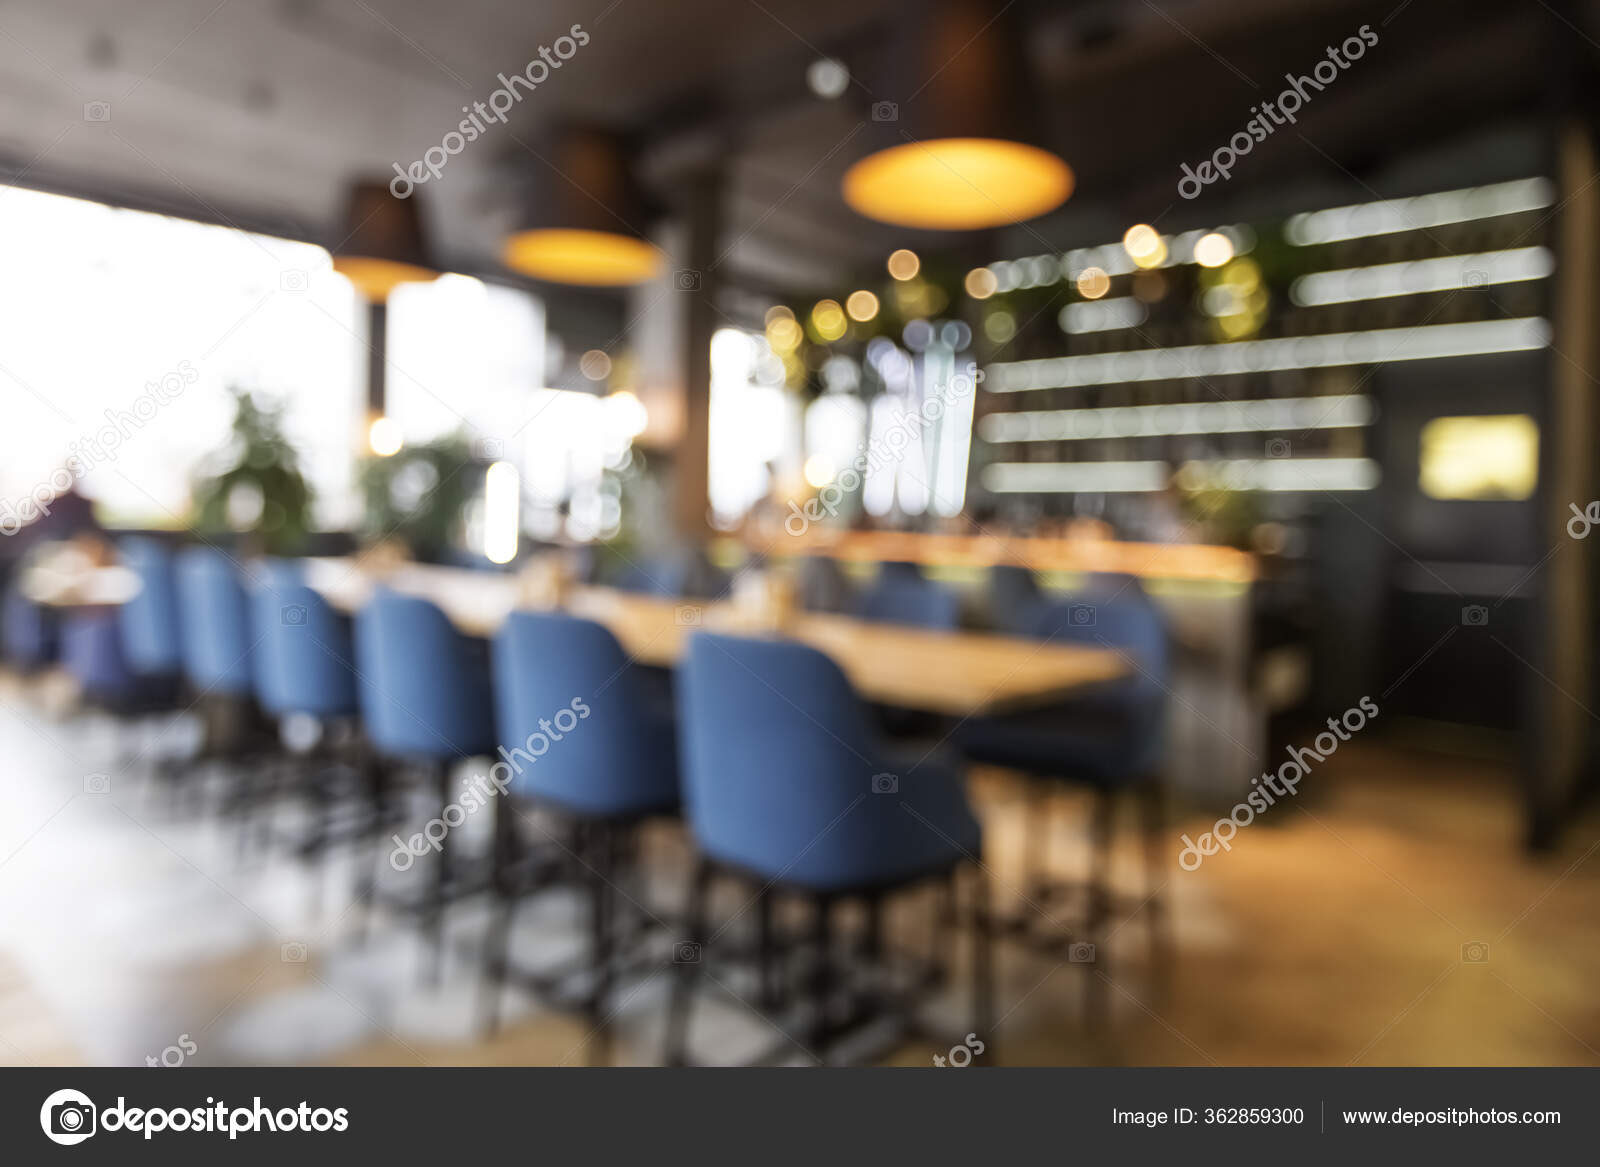 Blurred Abstract View On Bar Counter From Tables In Modern Cafe Stock Photo C Milkos 362859300